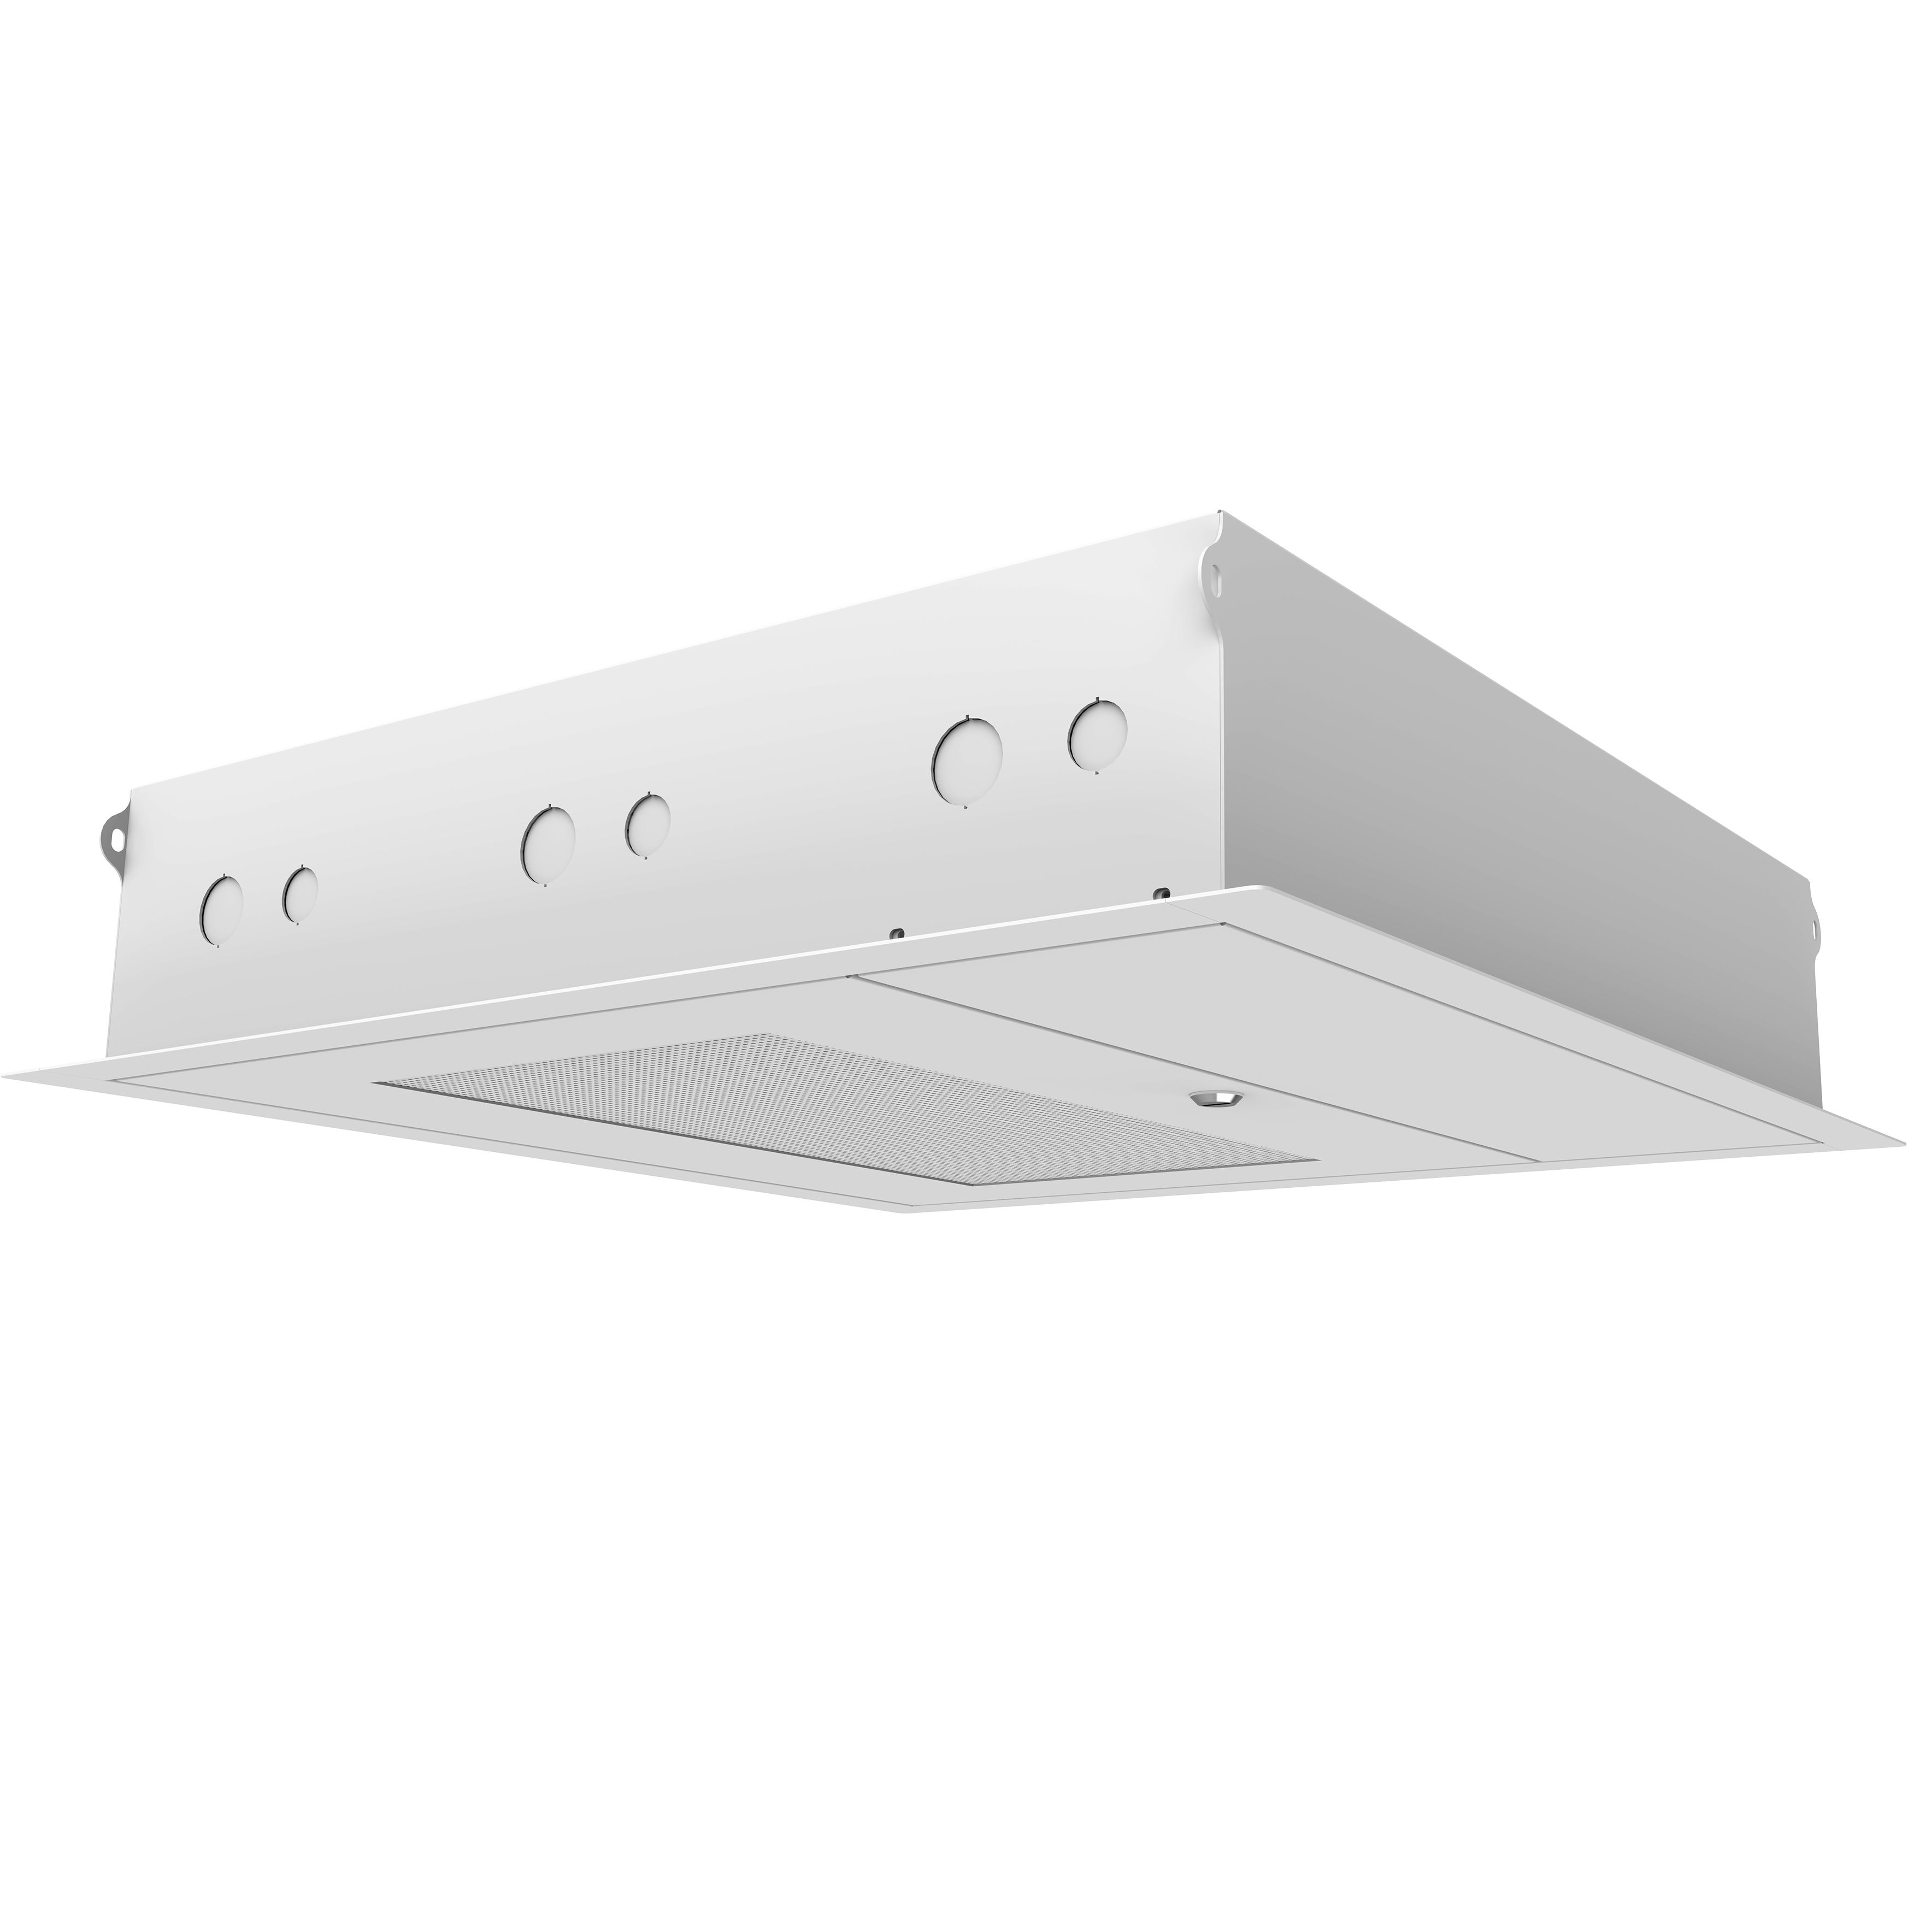 2X2 ft Customized False Ceiling Storage GearBox